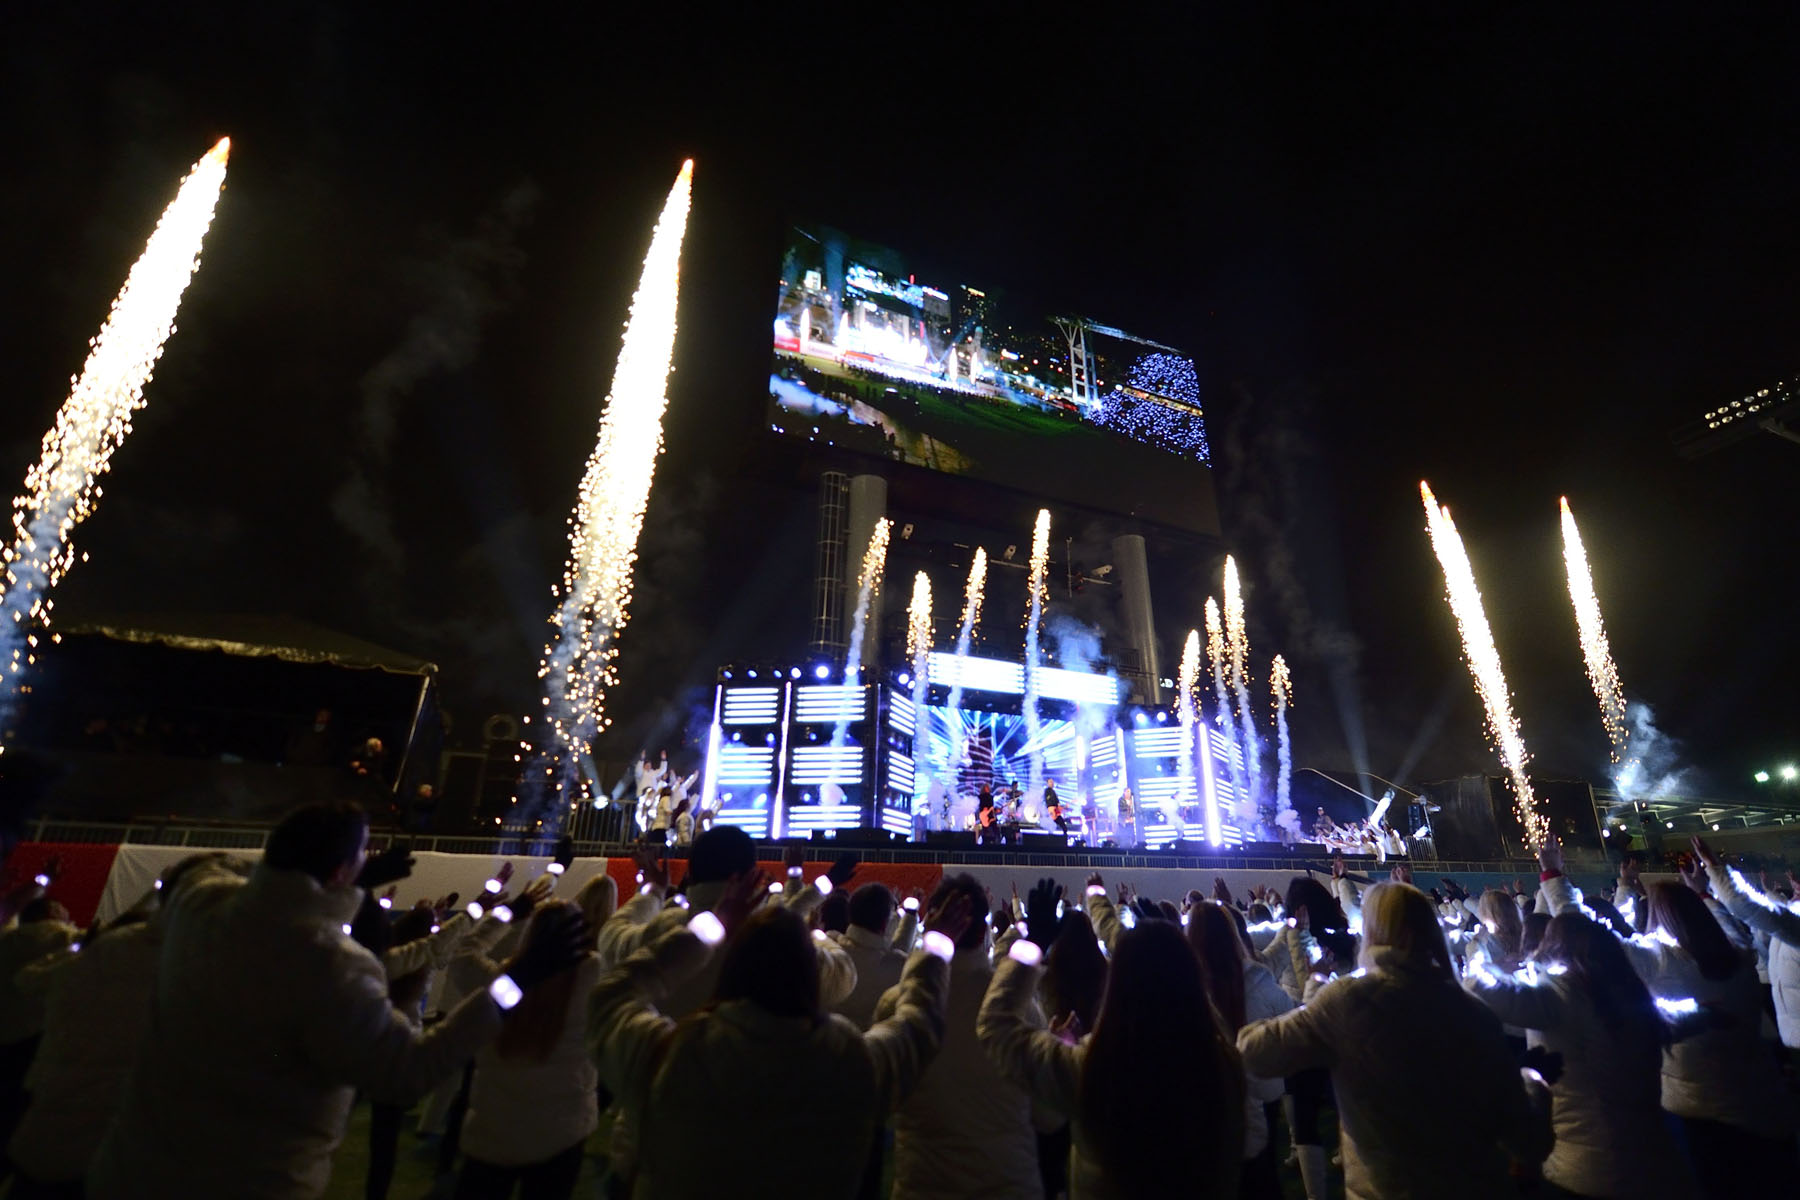 American pop rock band, OneRepublic headlined the halftime show at the 104th Grey Cup.